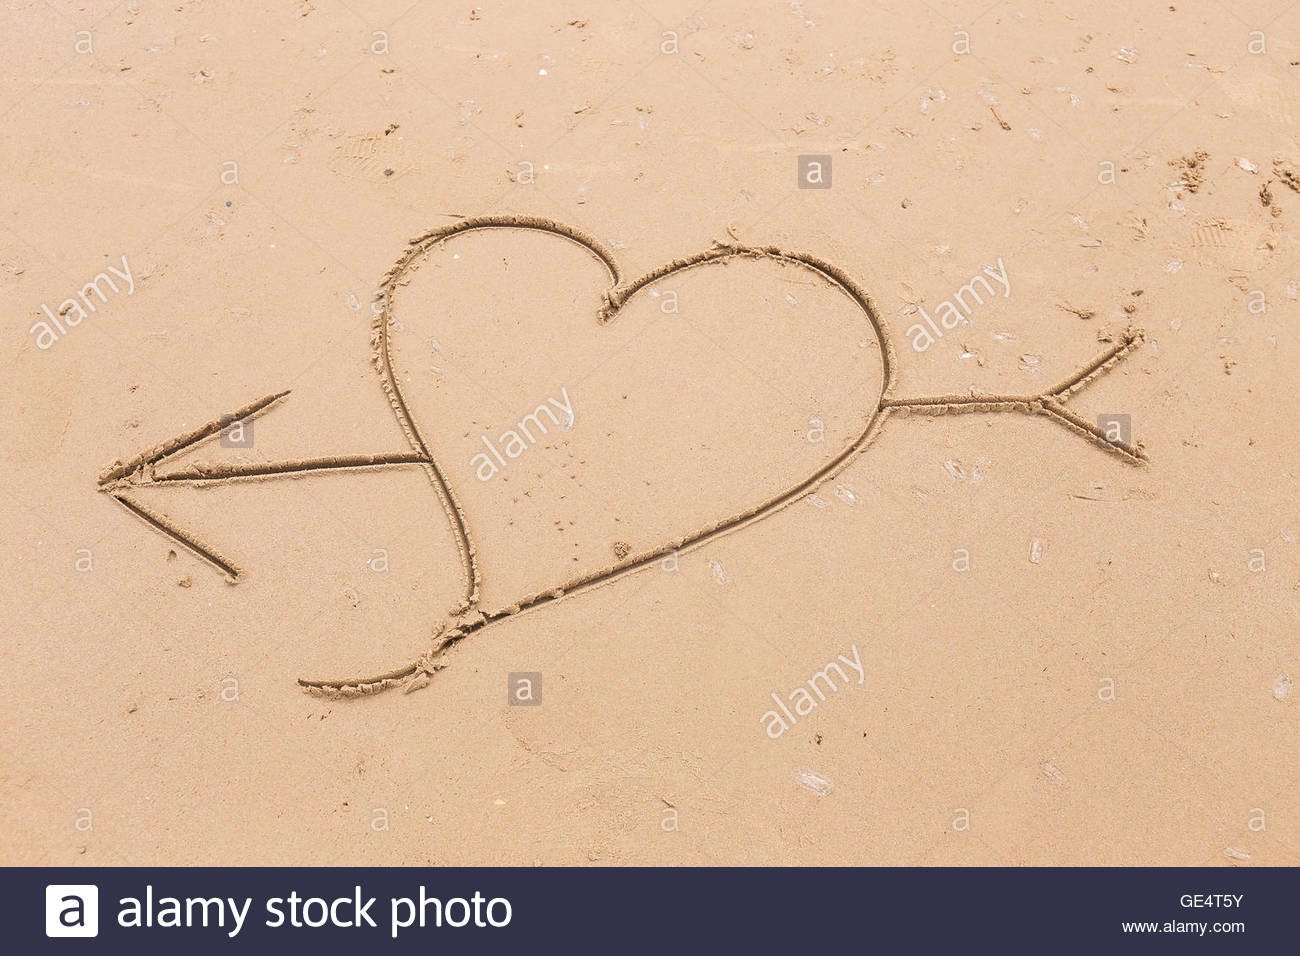 1300x956 Heart And Arrow Drawn In The Smooth Beach Sand. Love Concept Stock